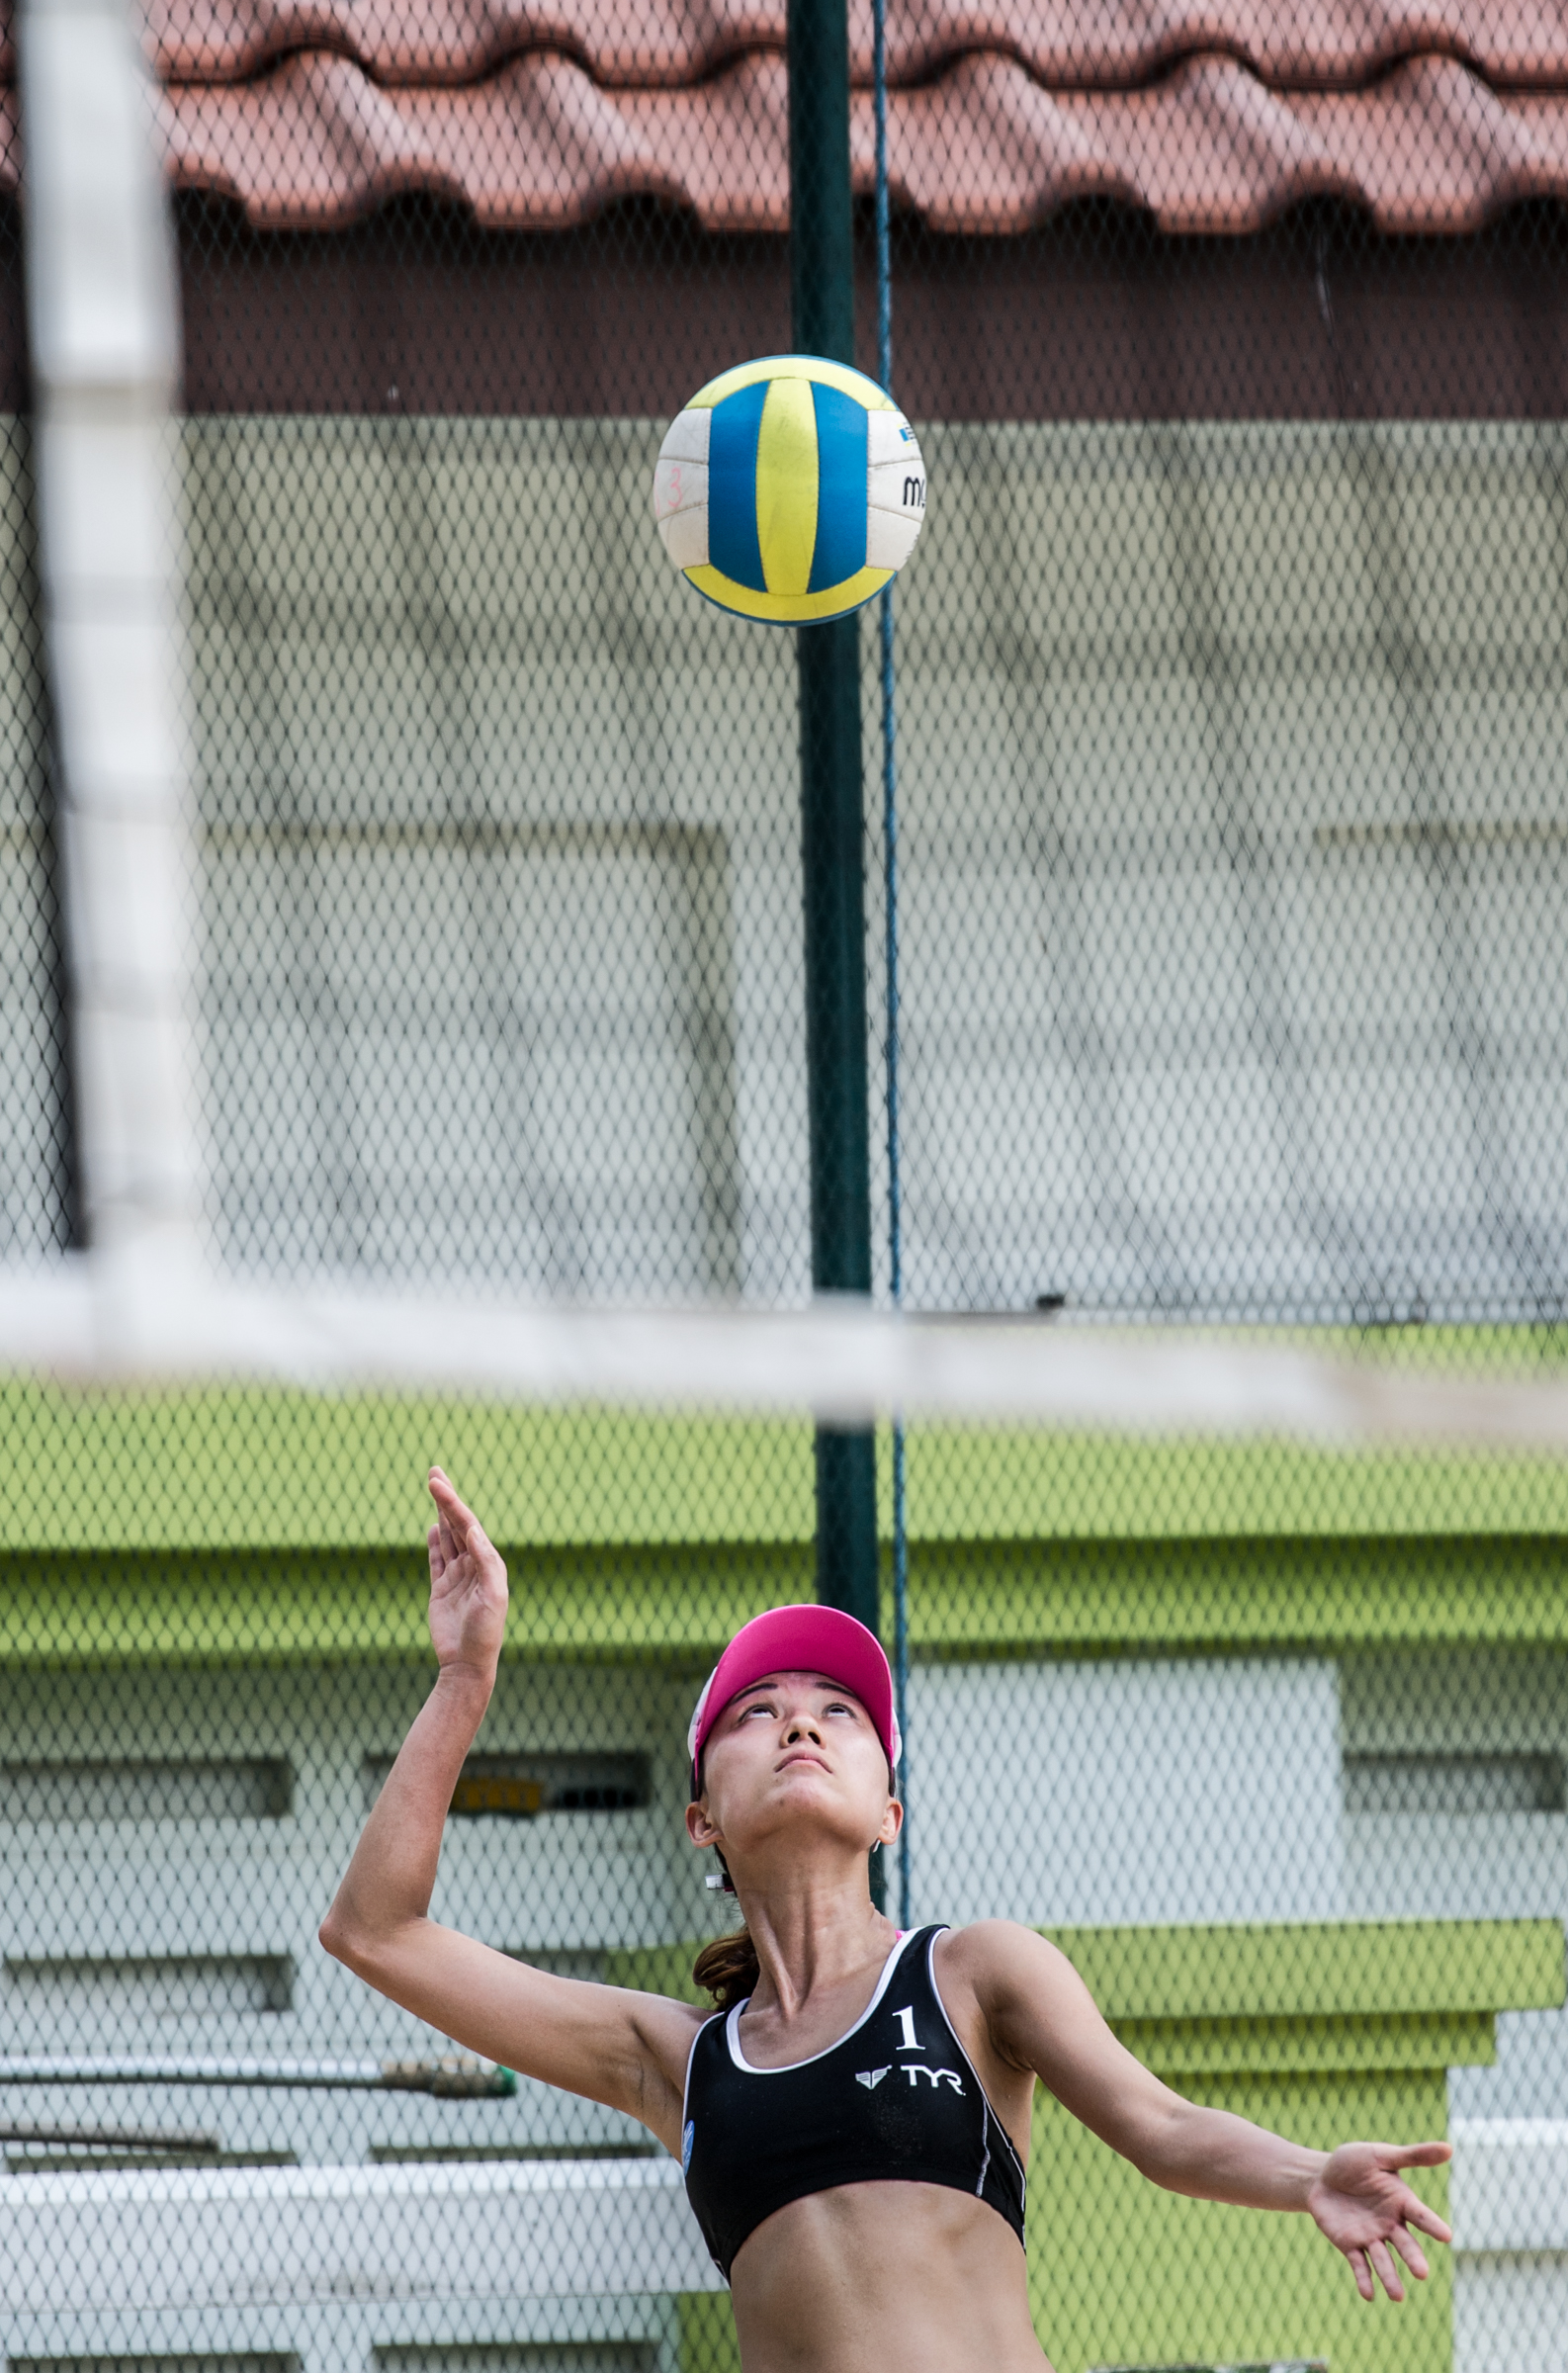 A Hong Kong player prepares to serve during the Beach Volleyball National Series at the Yio Chu Kang Swimming Complex.